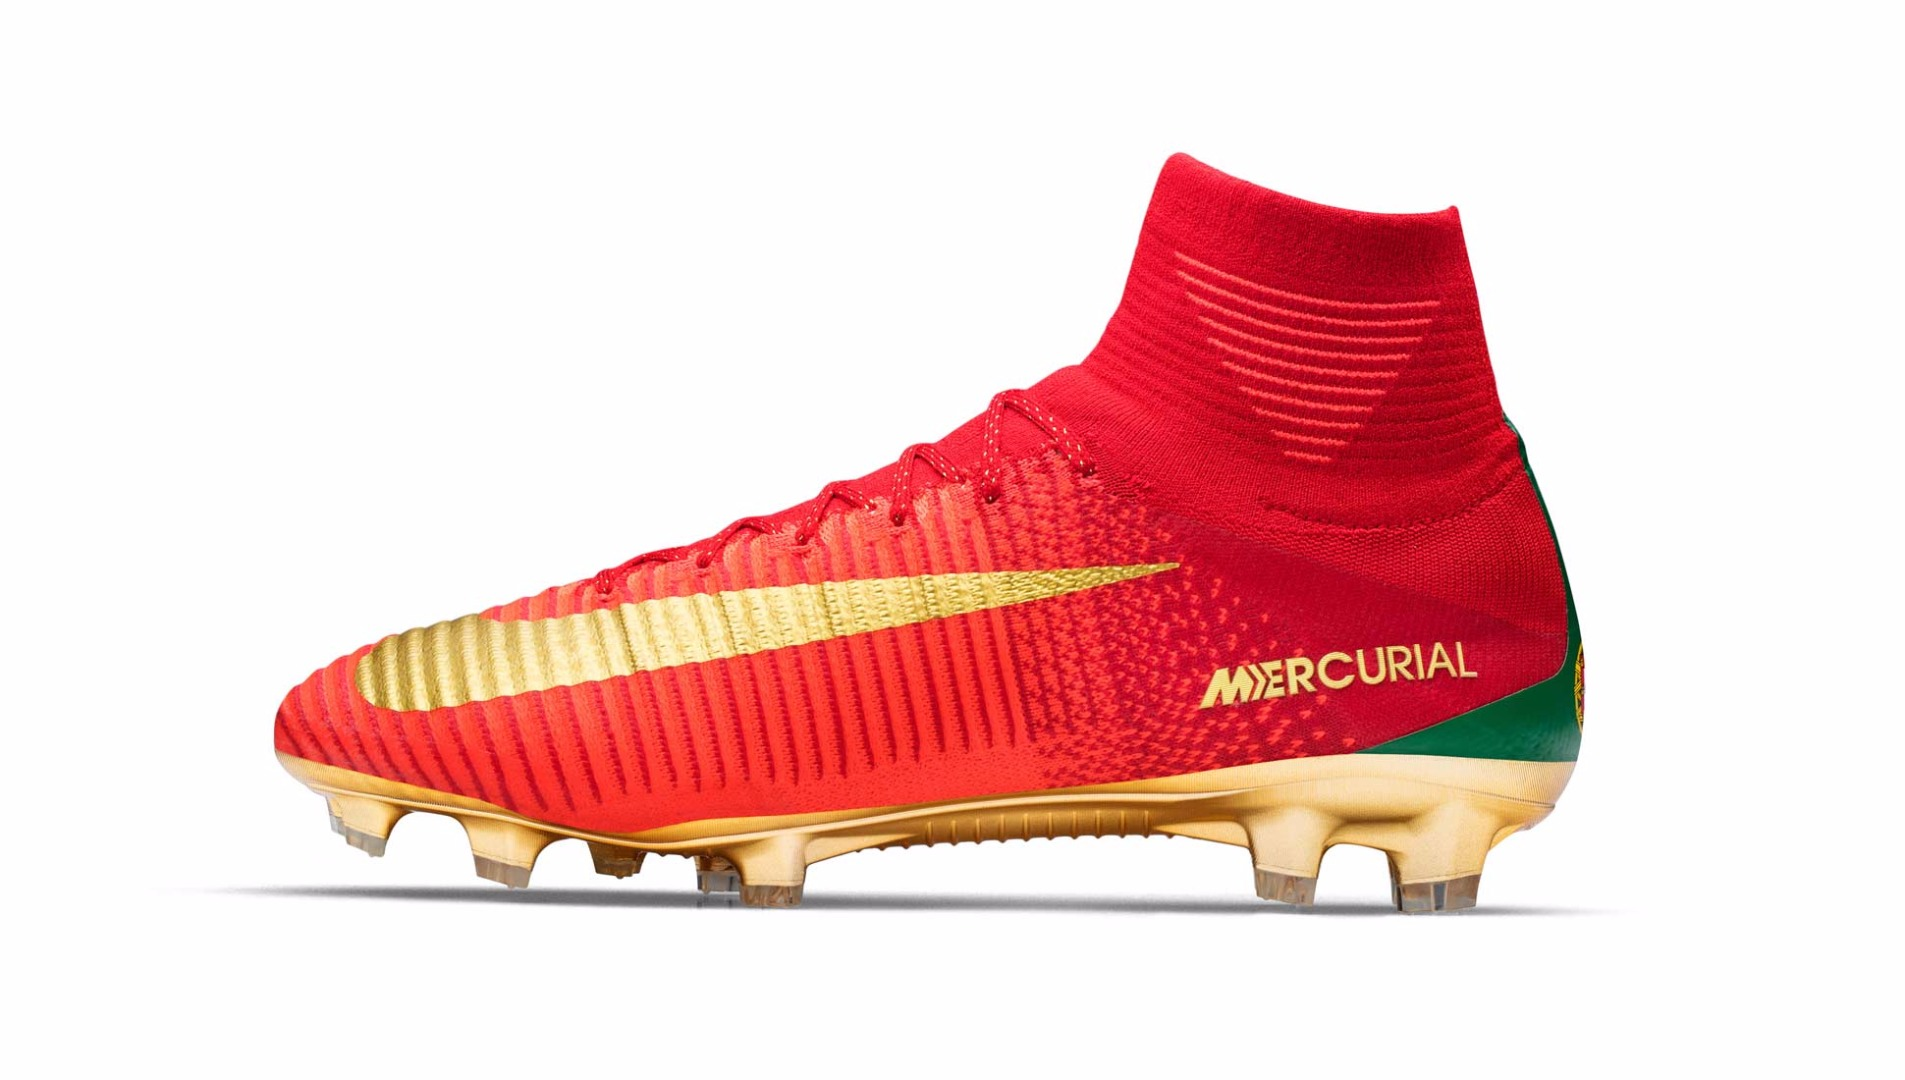 Nike Launch CR7 Mercurial Campeões Football Boots - SoccerBible. 602e0894e